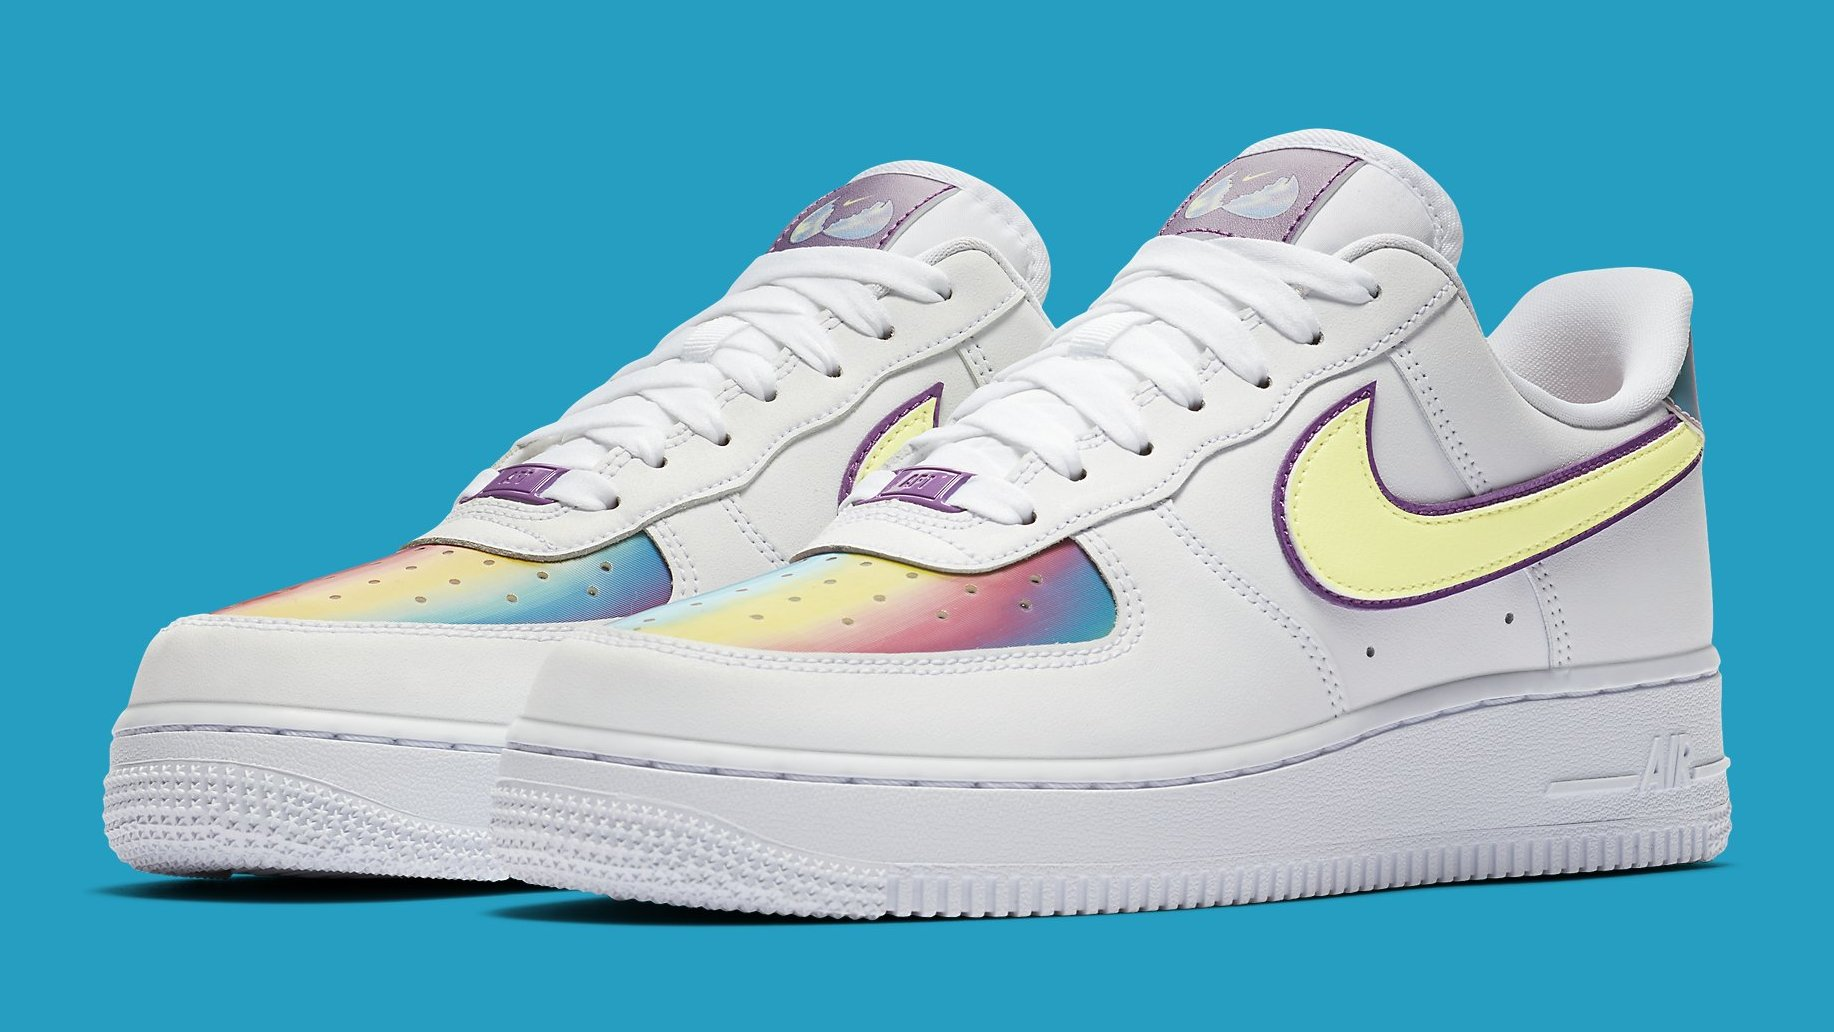 Nike Set to Release Another 'Easter' Air Force 1 Low Next Month